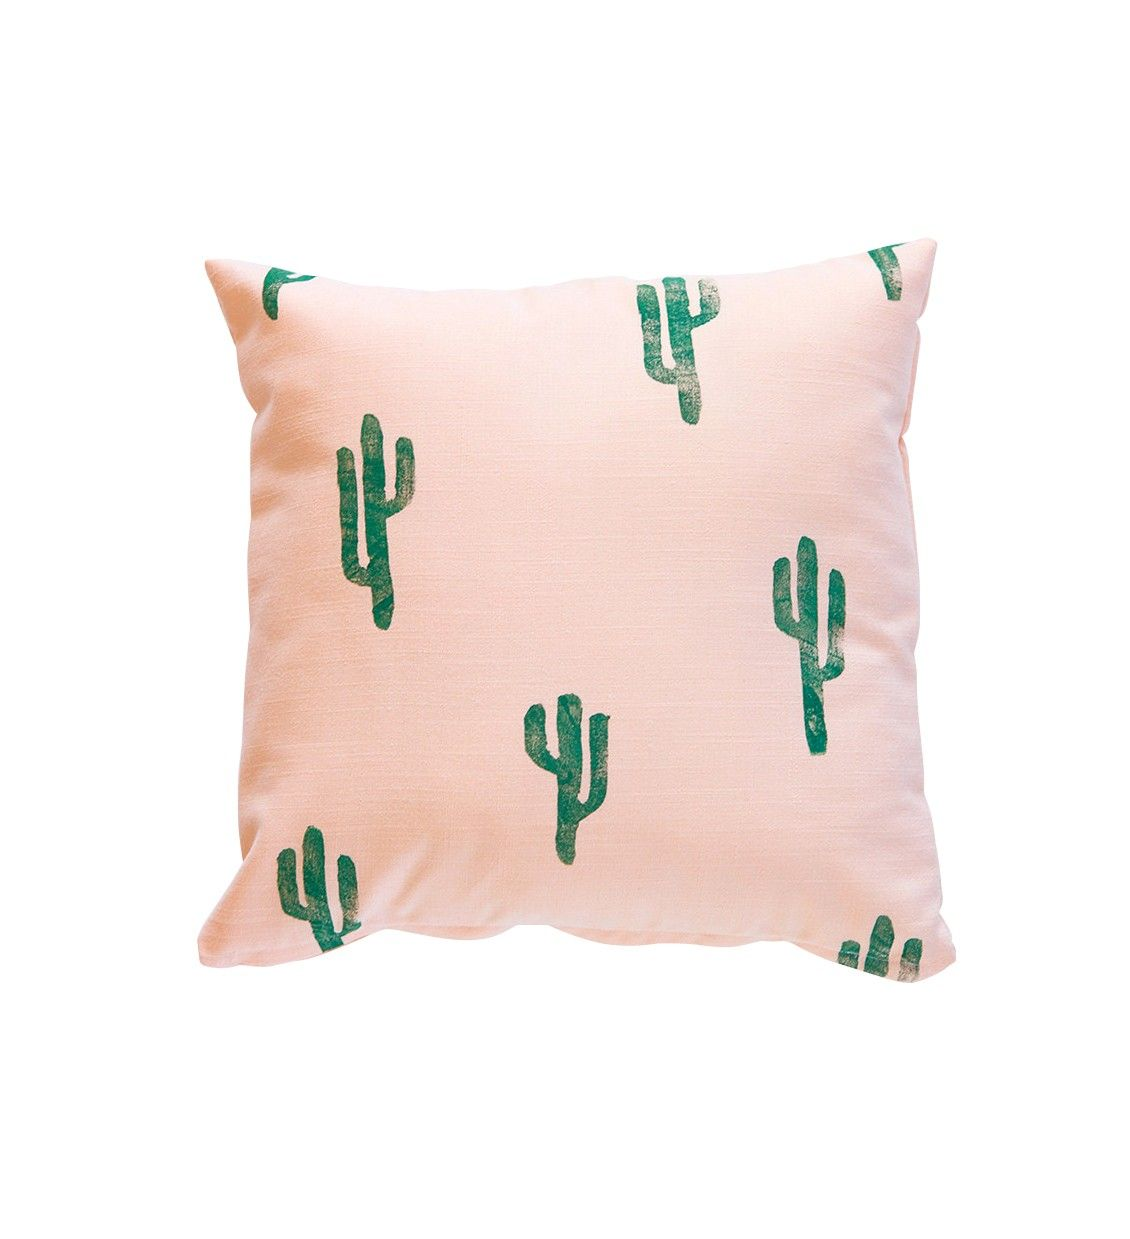 Green and Peach Cactus Throw Pillow - Decor - Accessories